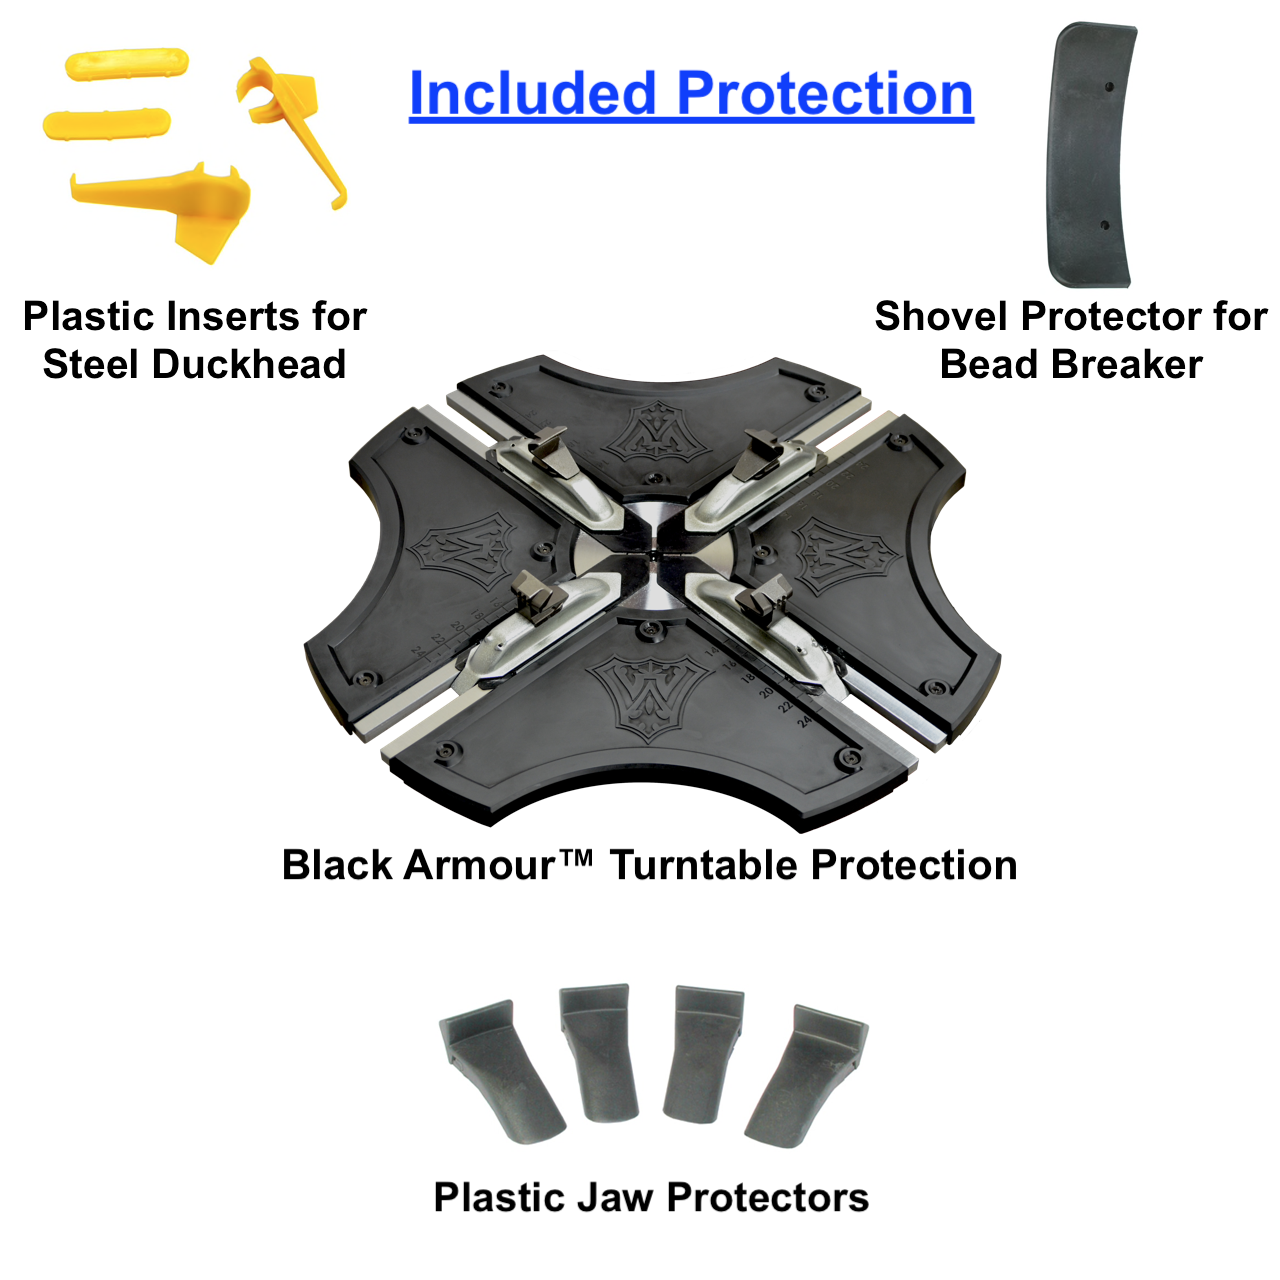 W-894XS Included Protection